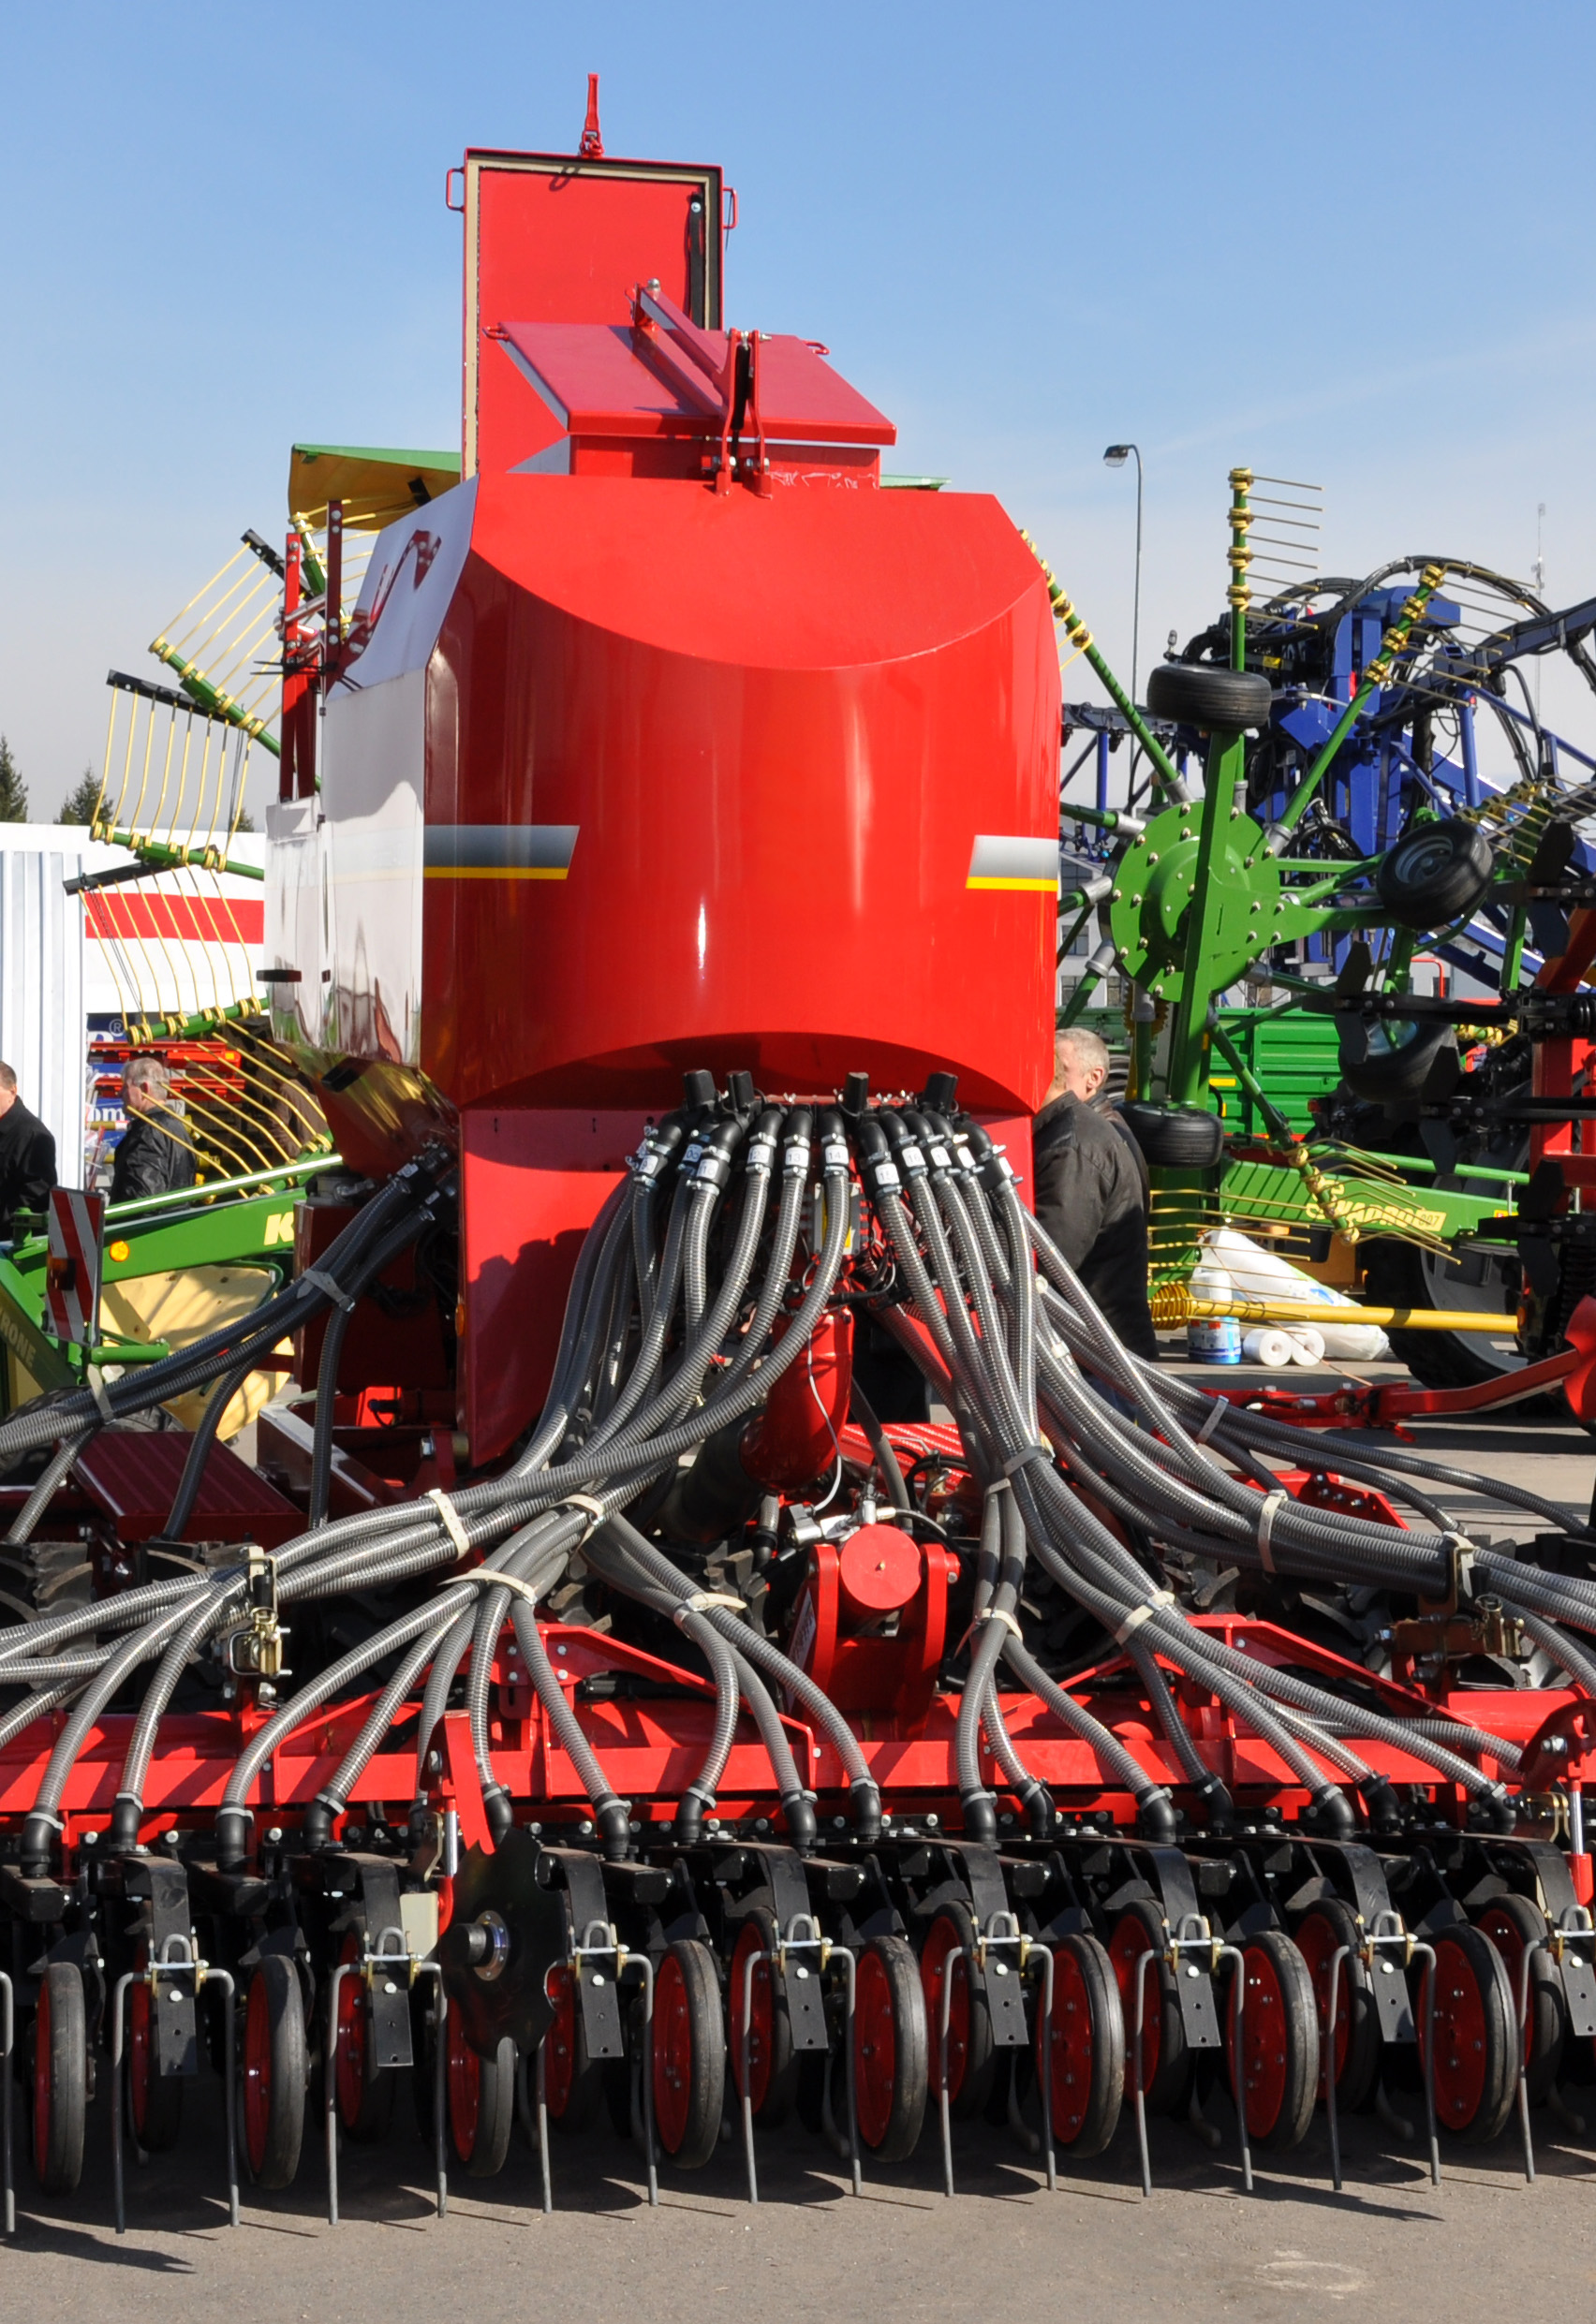 Seeder, Agricultural, Transportation, Transport, Trailer, HQ Photo